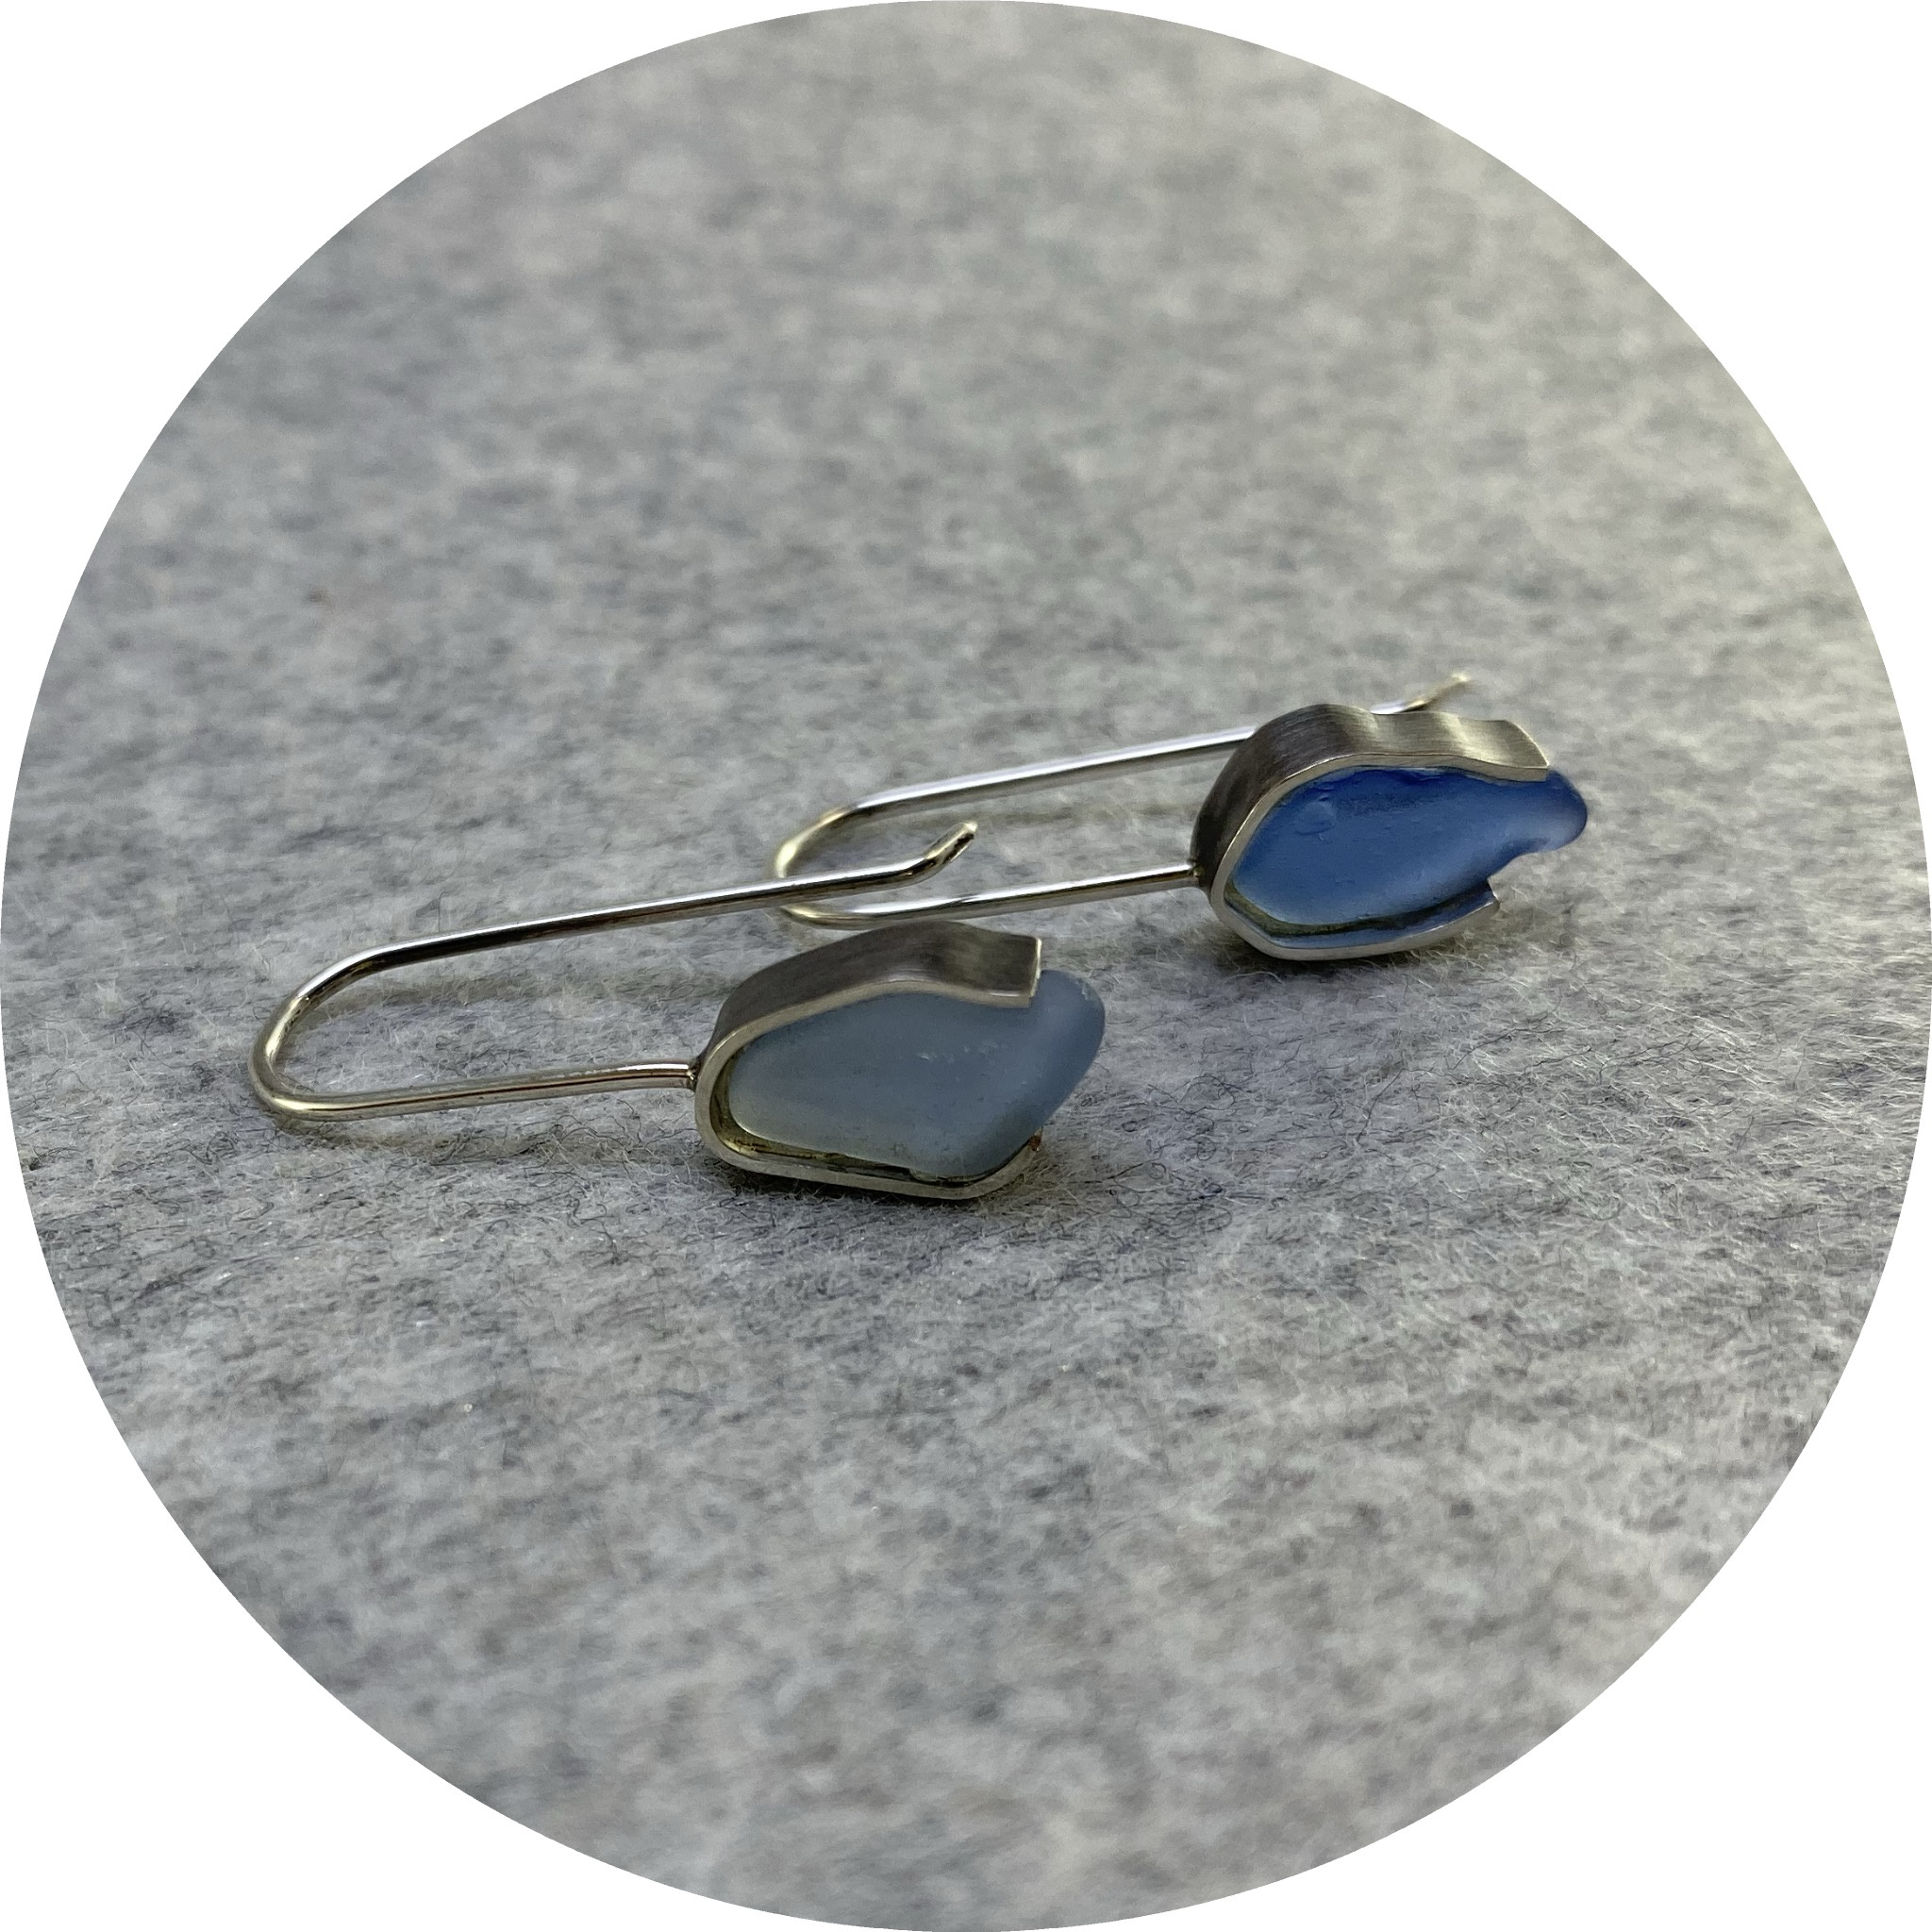 Susan Ewington - 'Blue Beach Glass Earrings', 925 silver, glass